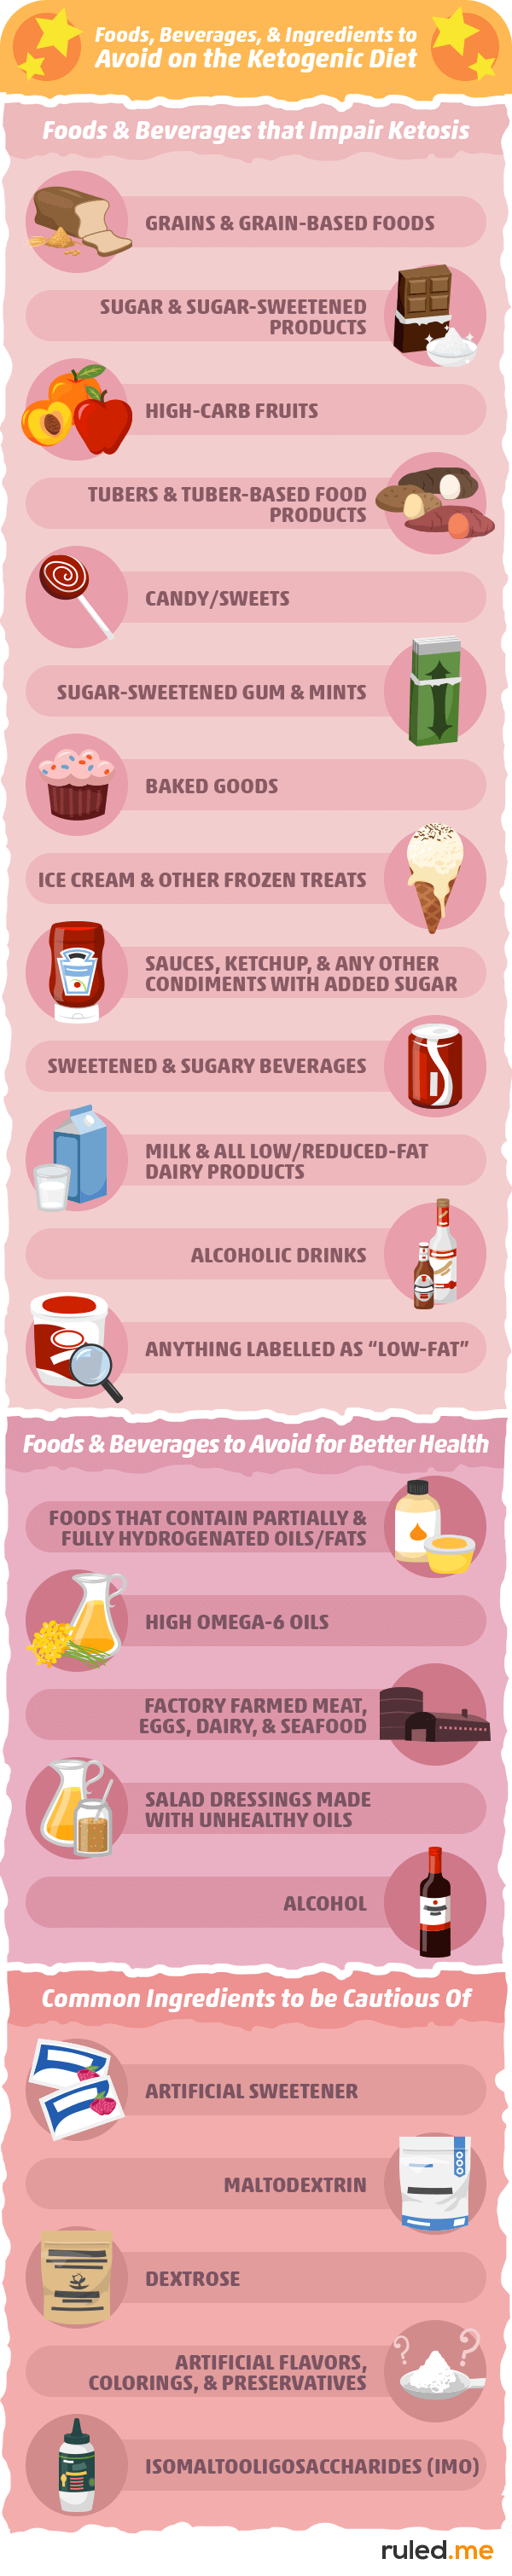 Foods, Drinks, and Ingredients to Avoid on Keto